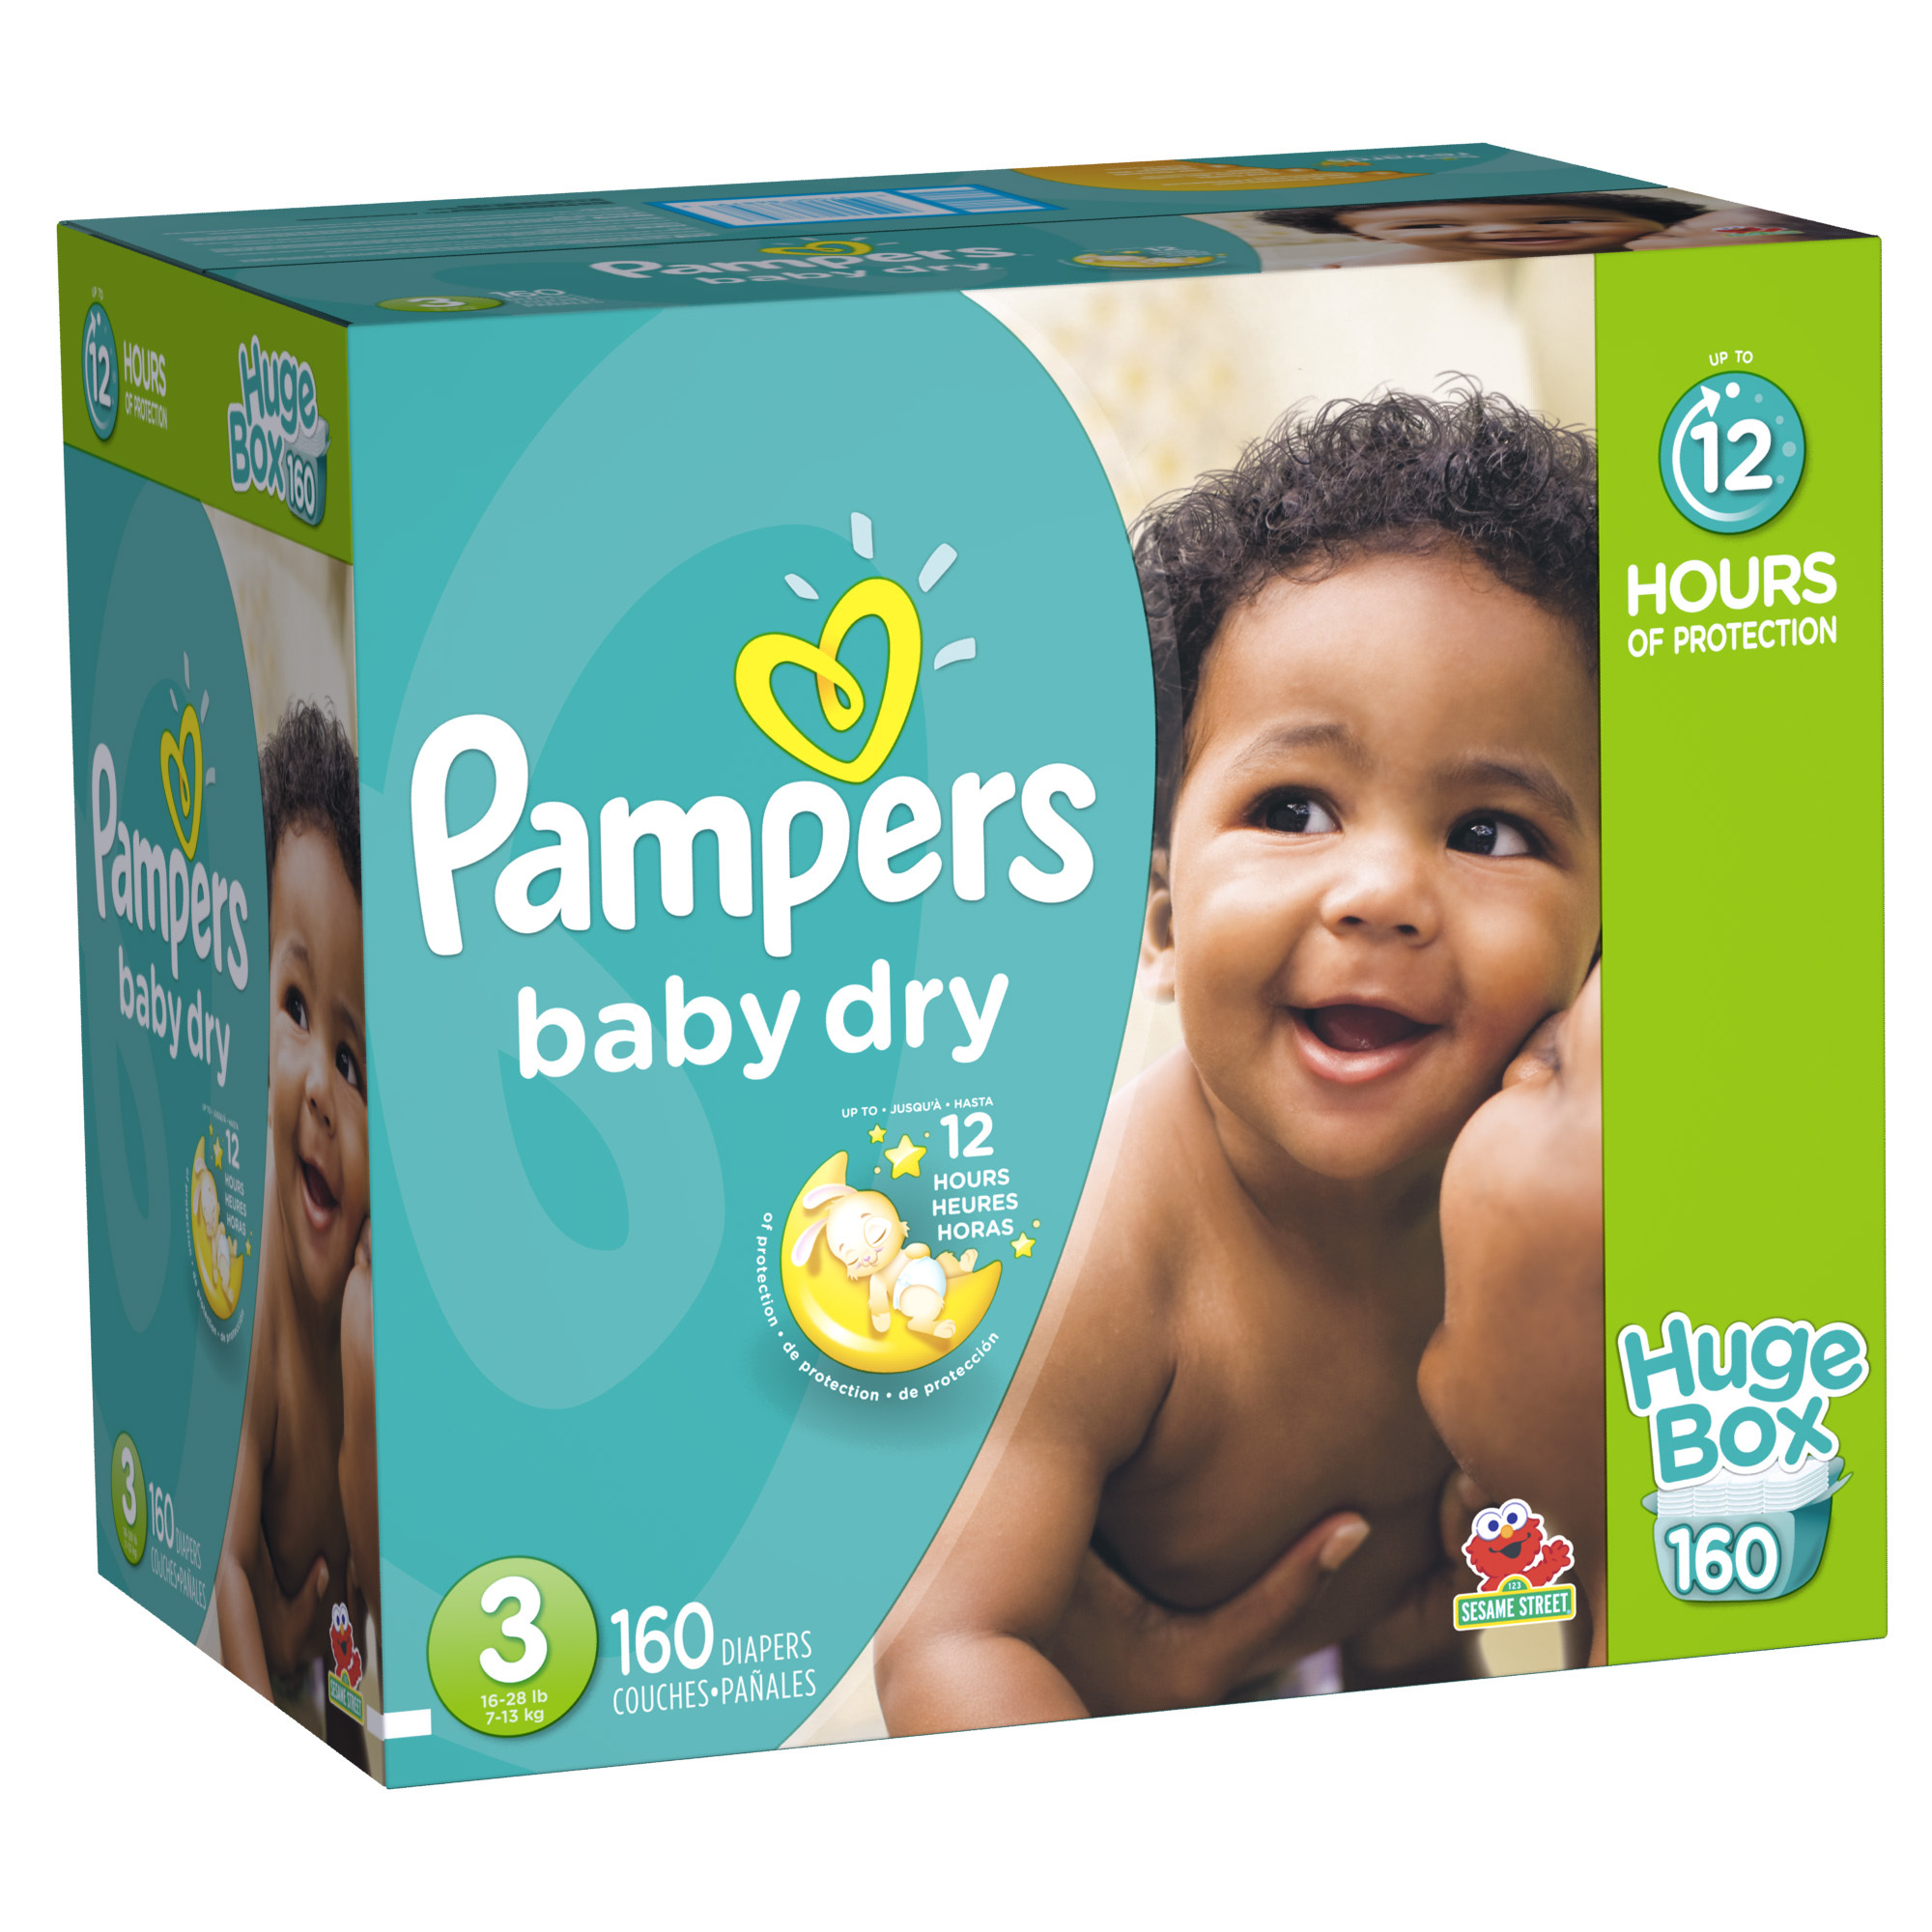 Pampers Baby Dry Diapers (Choose Size and Count)